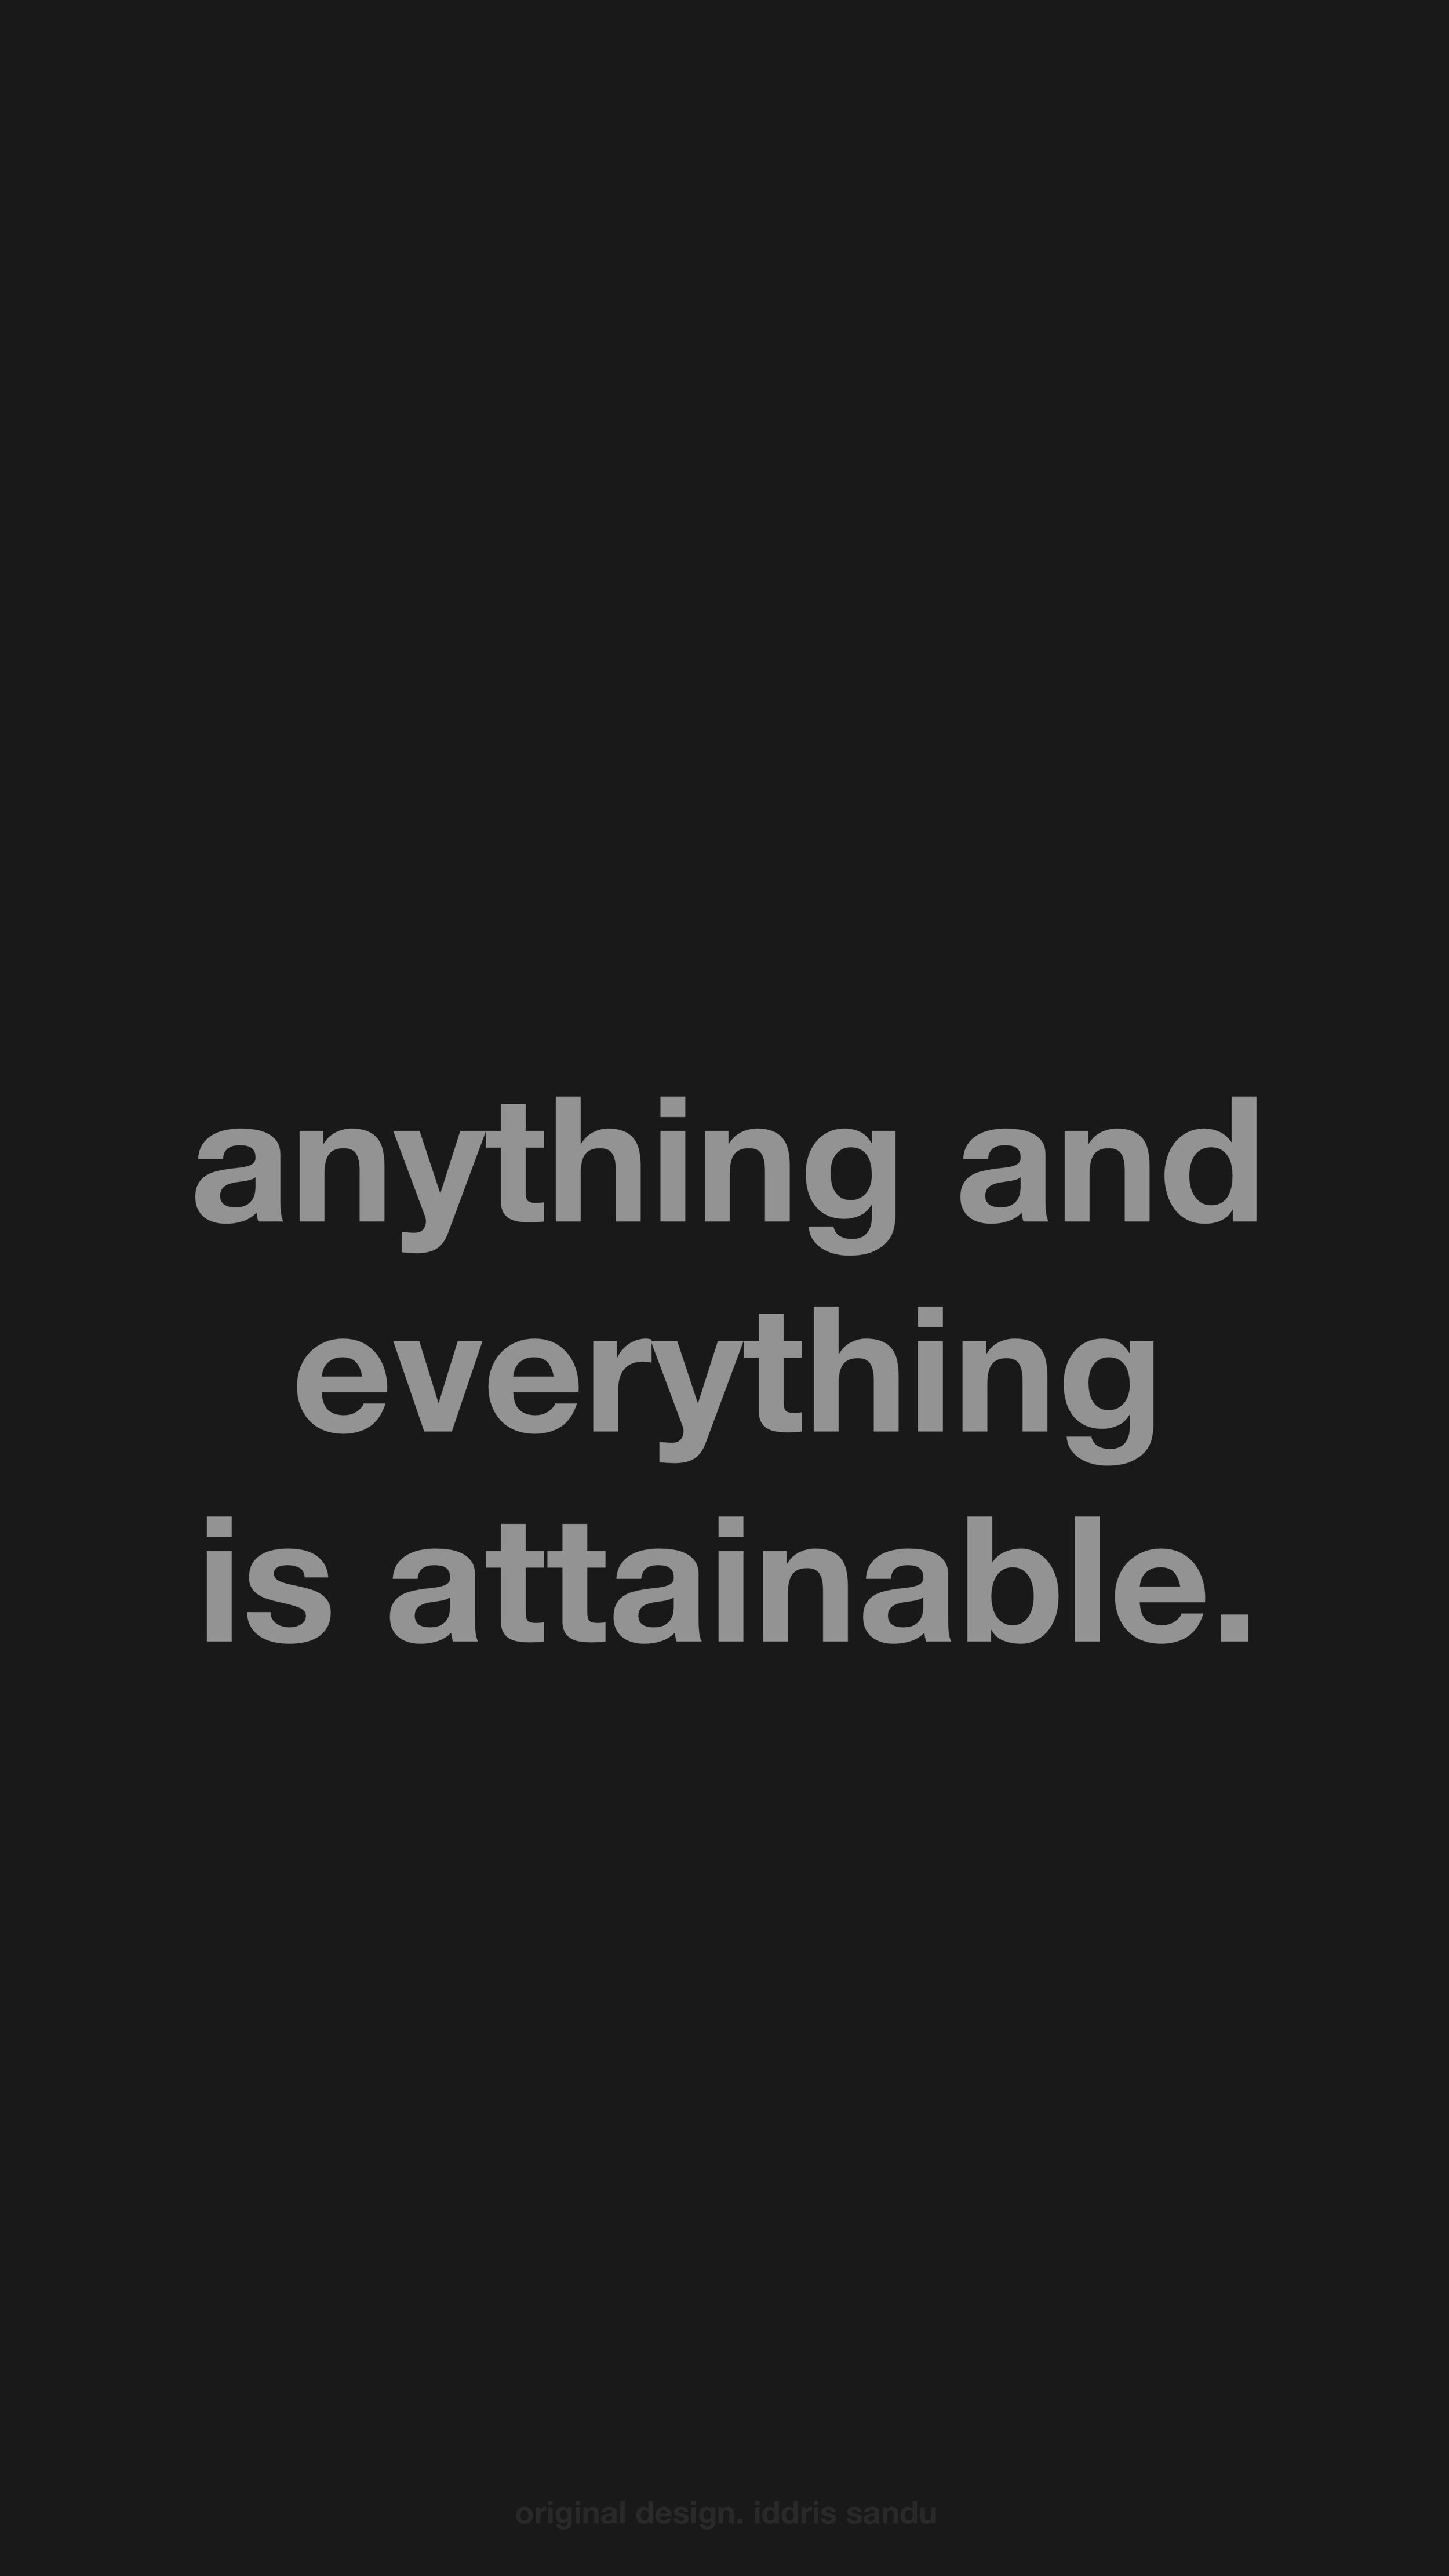 anything and everythingg is attainable (mobile).png